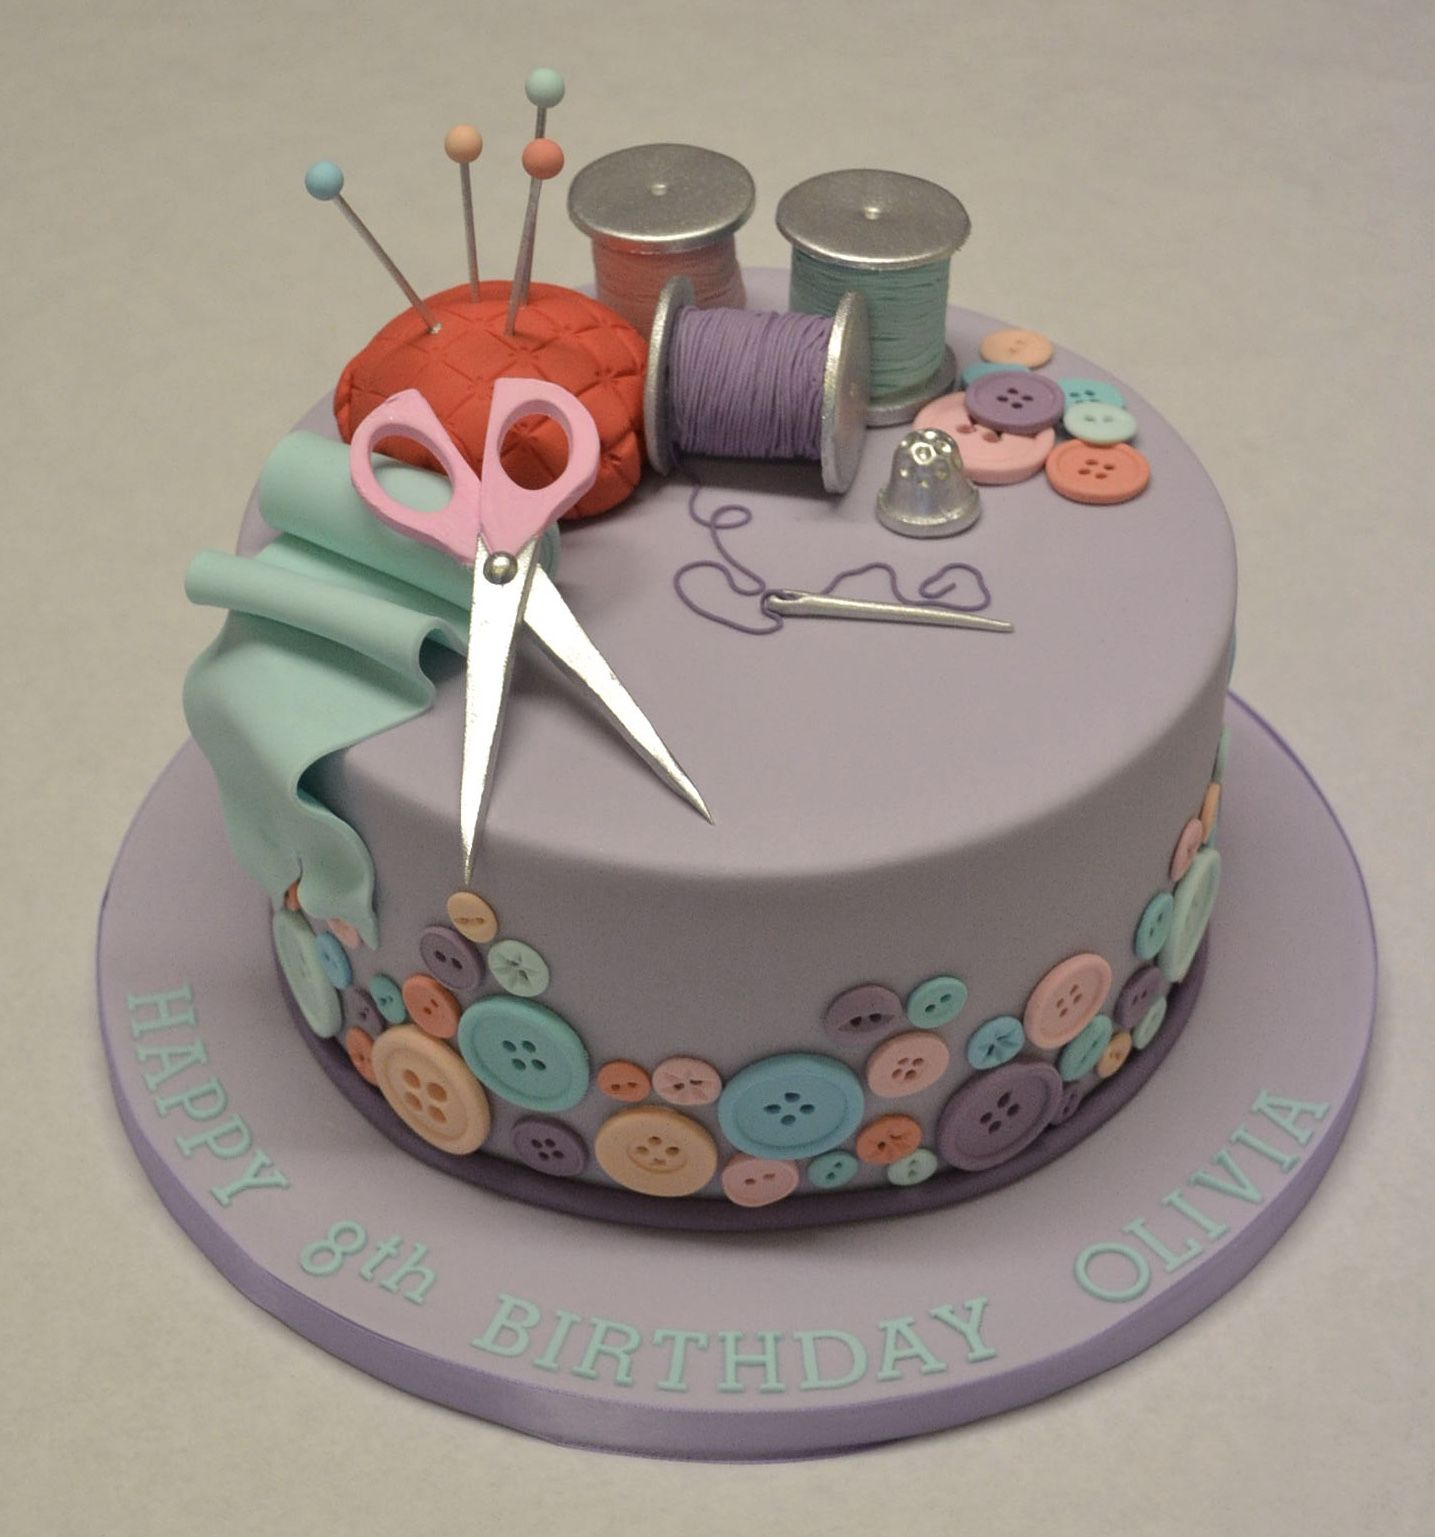 Sewing And Needlework Cake Cakes Cake Knitting Cake Birthday